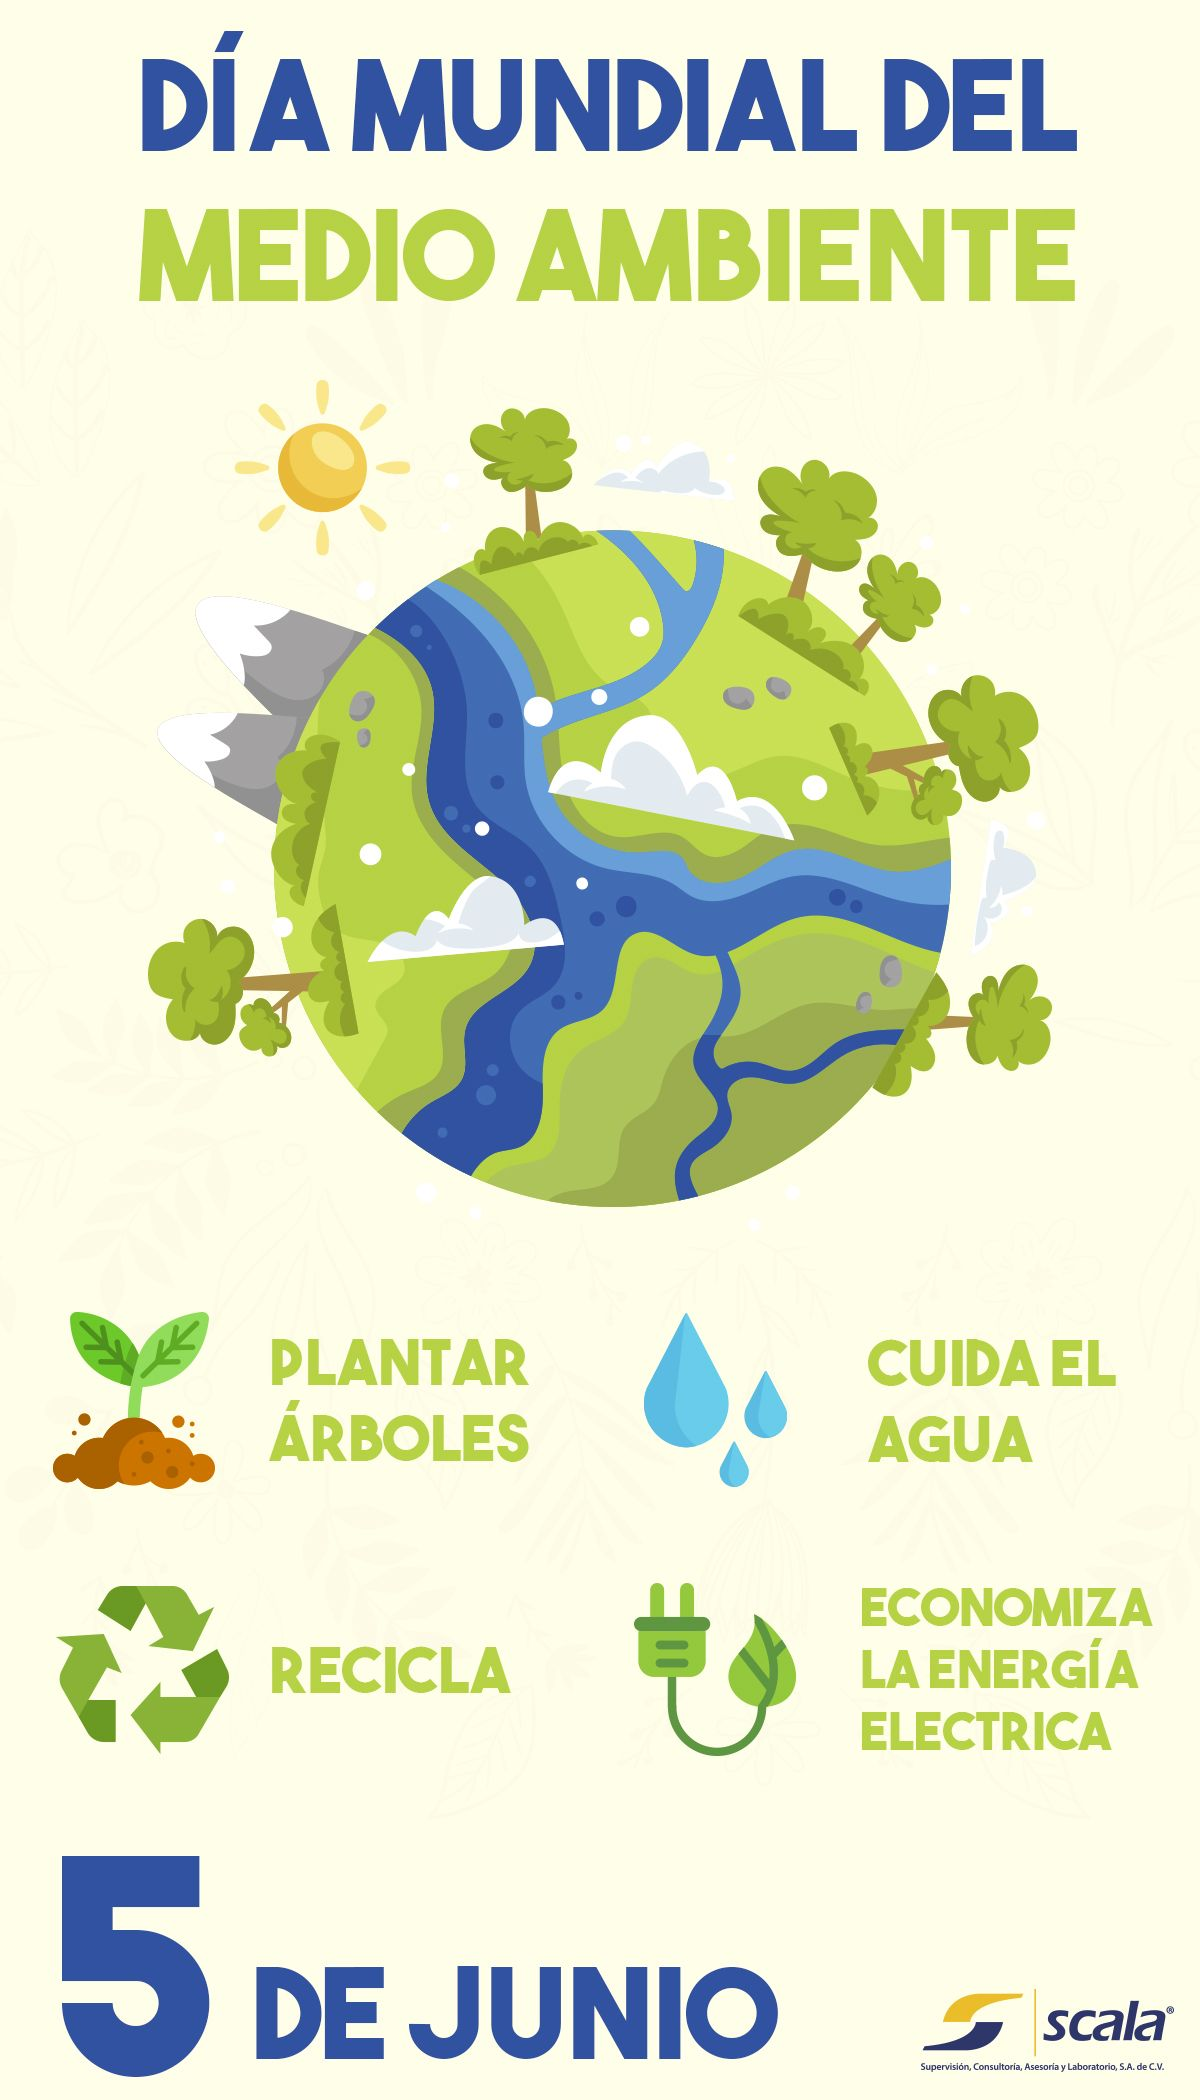 8 Ideas De Pachamama Frases Ambientales Frases Ecologicas Medio Ambiente Frases